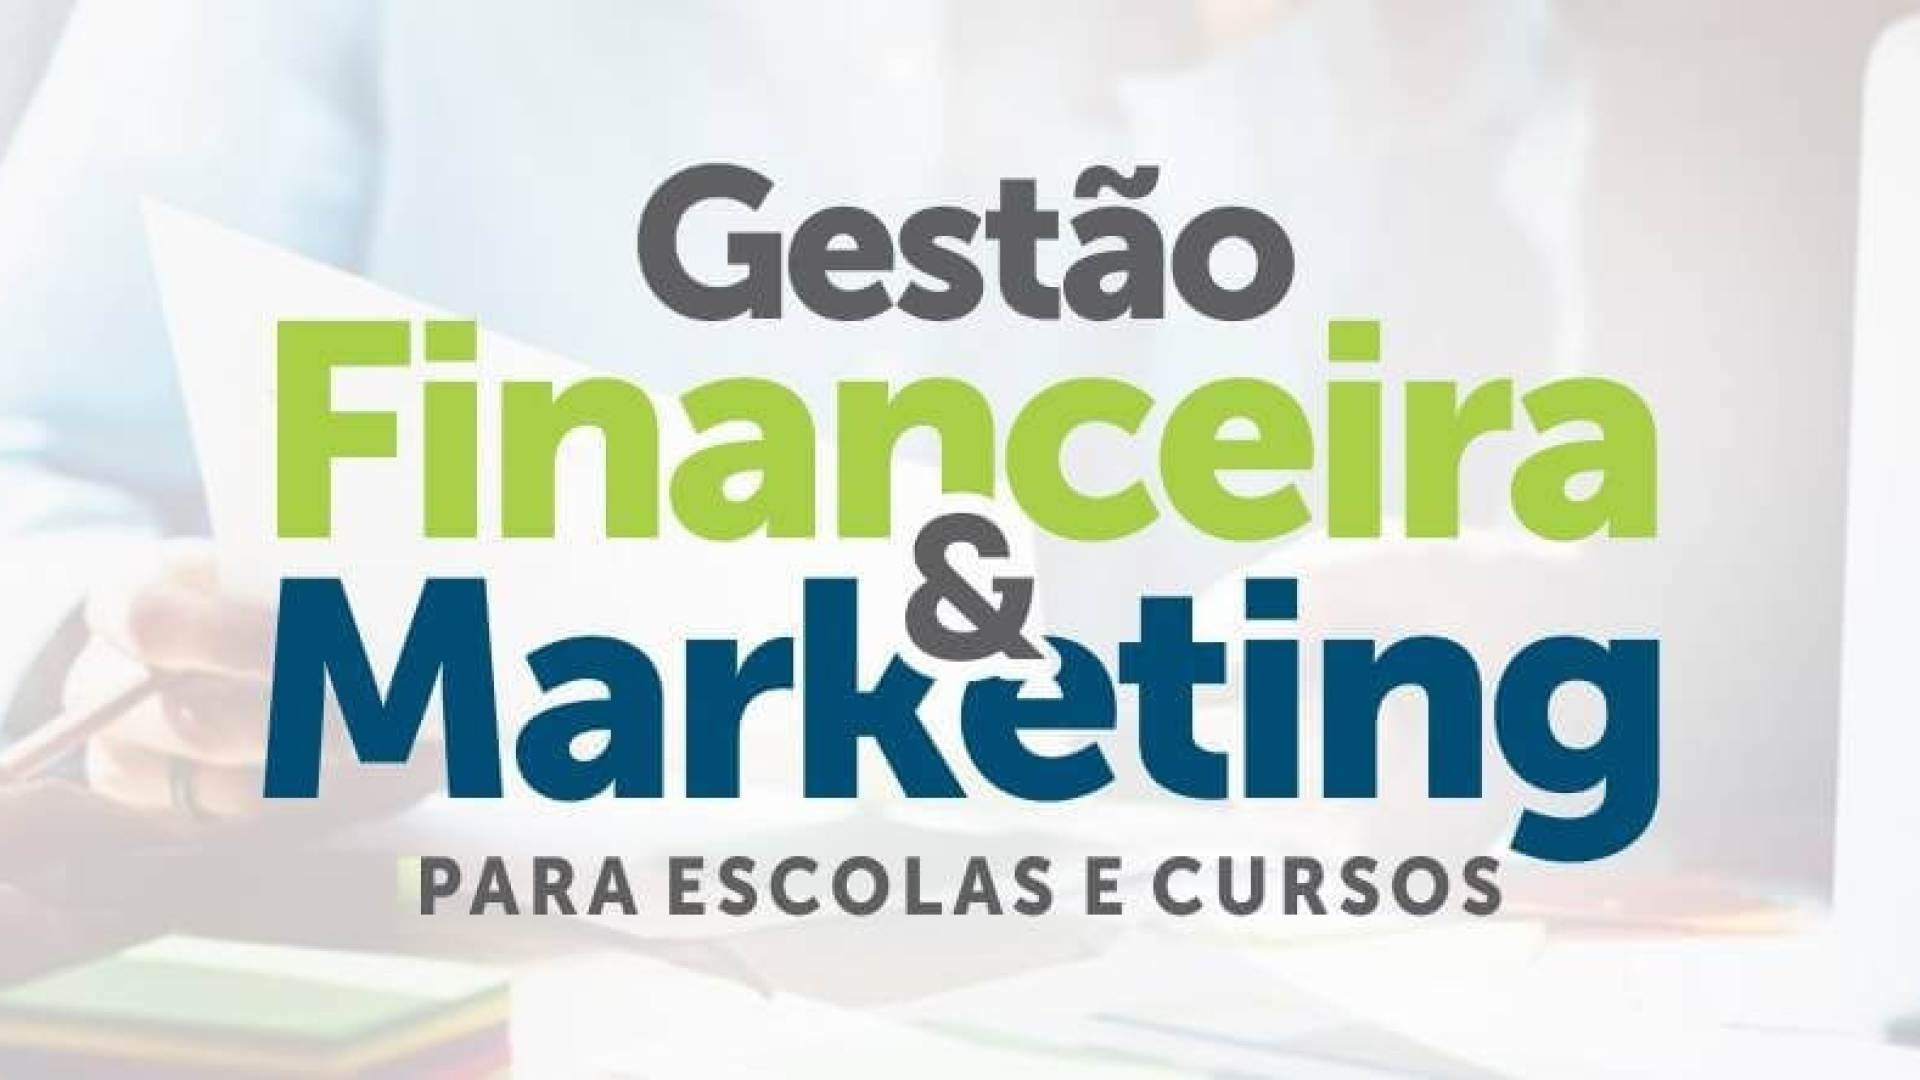 Gestão e marketing Digital para escolas